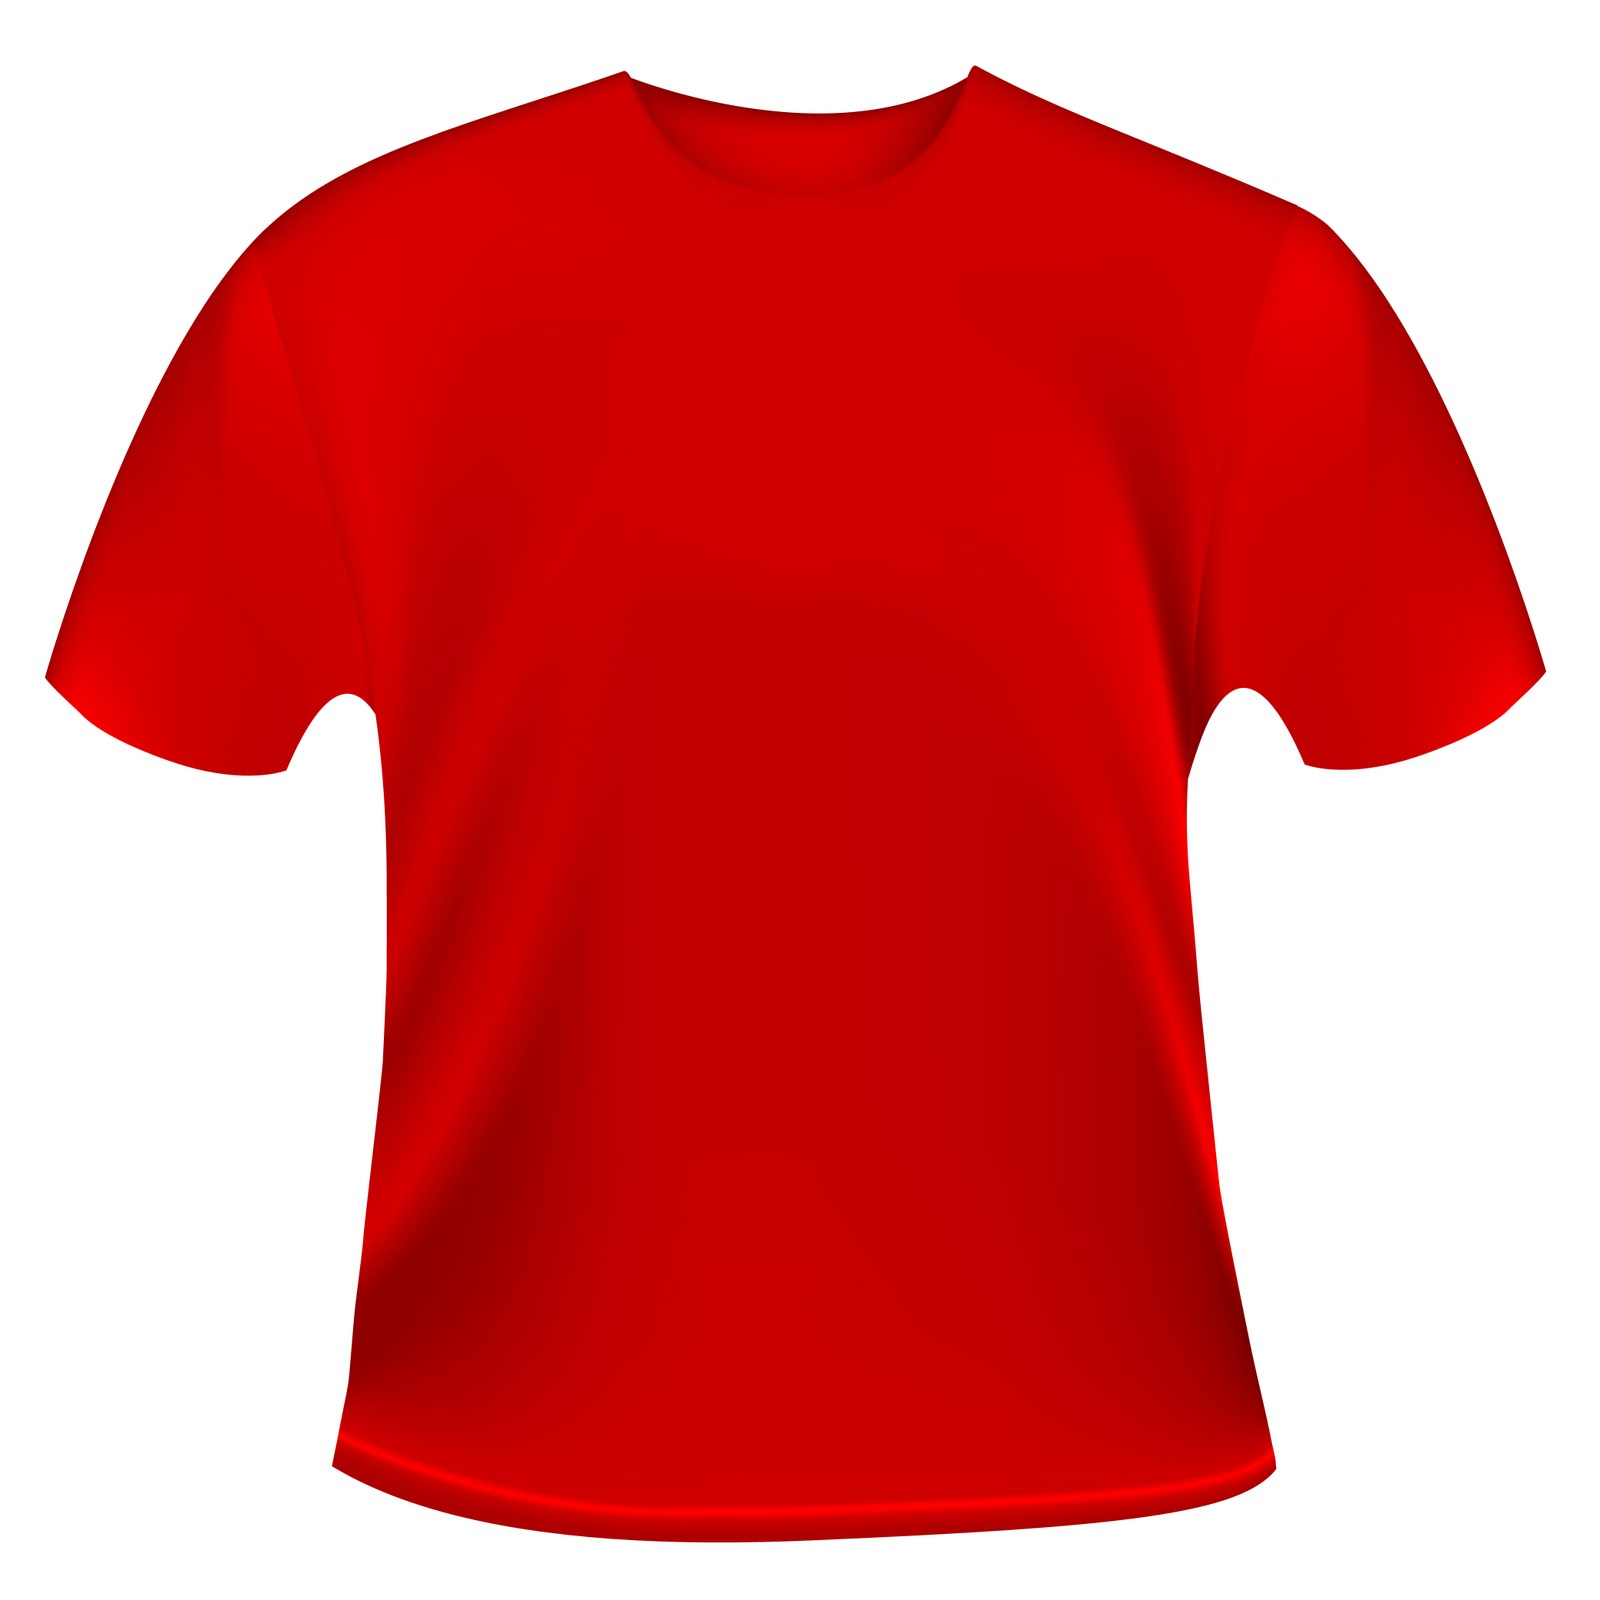 TShirt Clipart  Helping you find clipart for your t